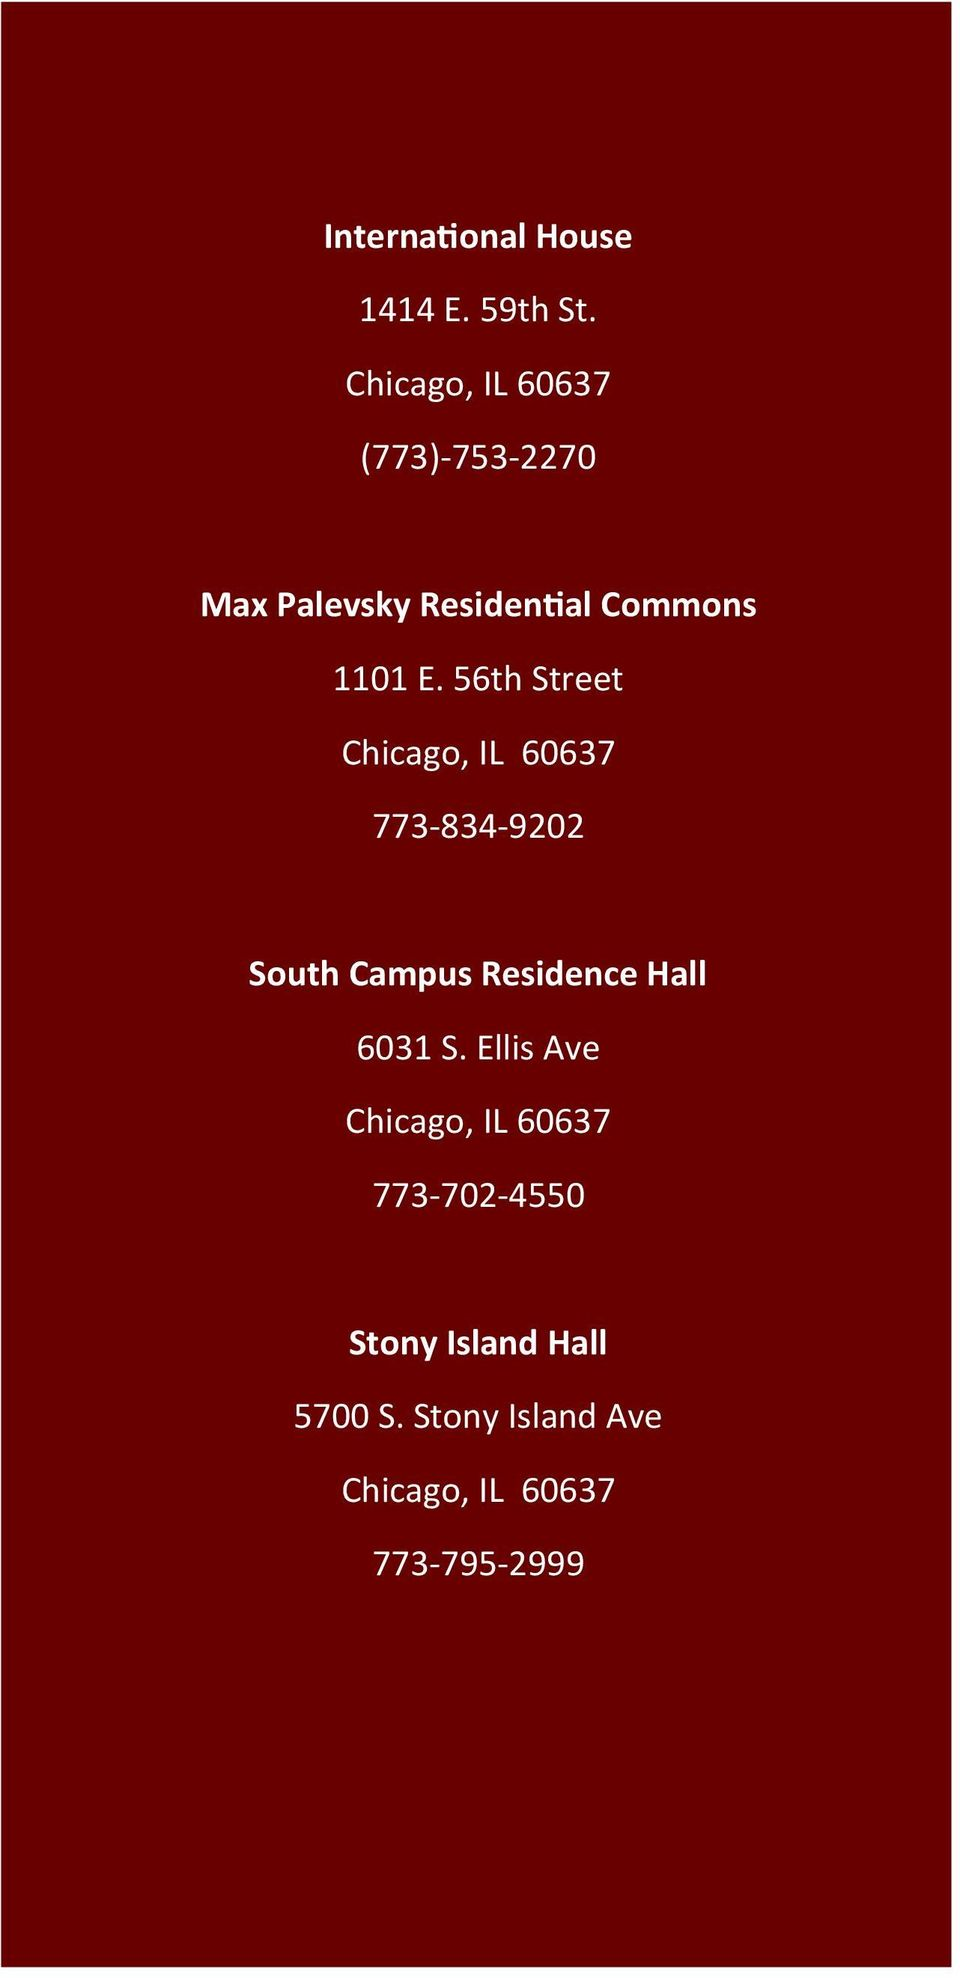 56th Street Chicago, IL 60637 773-834-9202 South Campus Residence Hall 6031